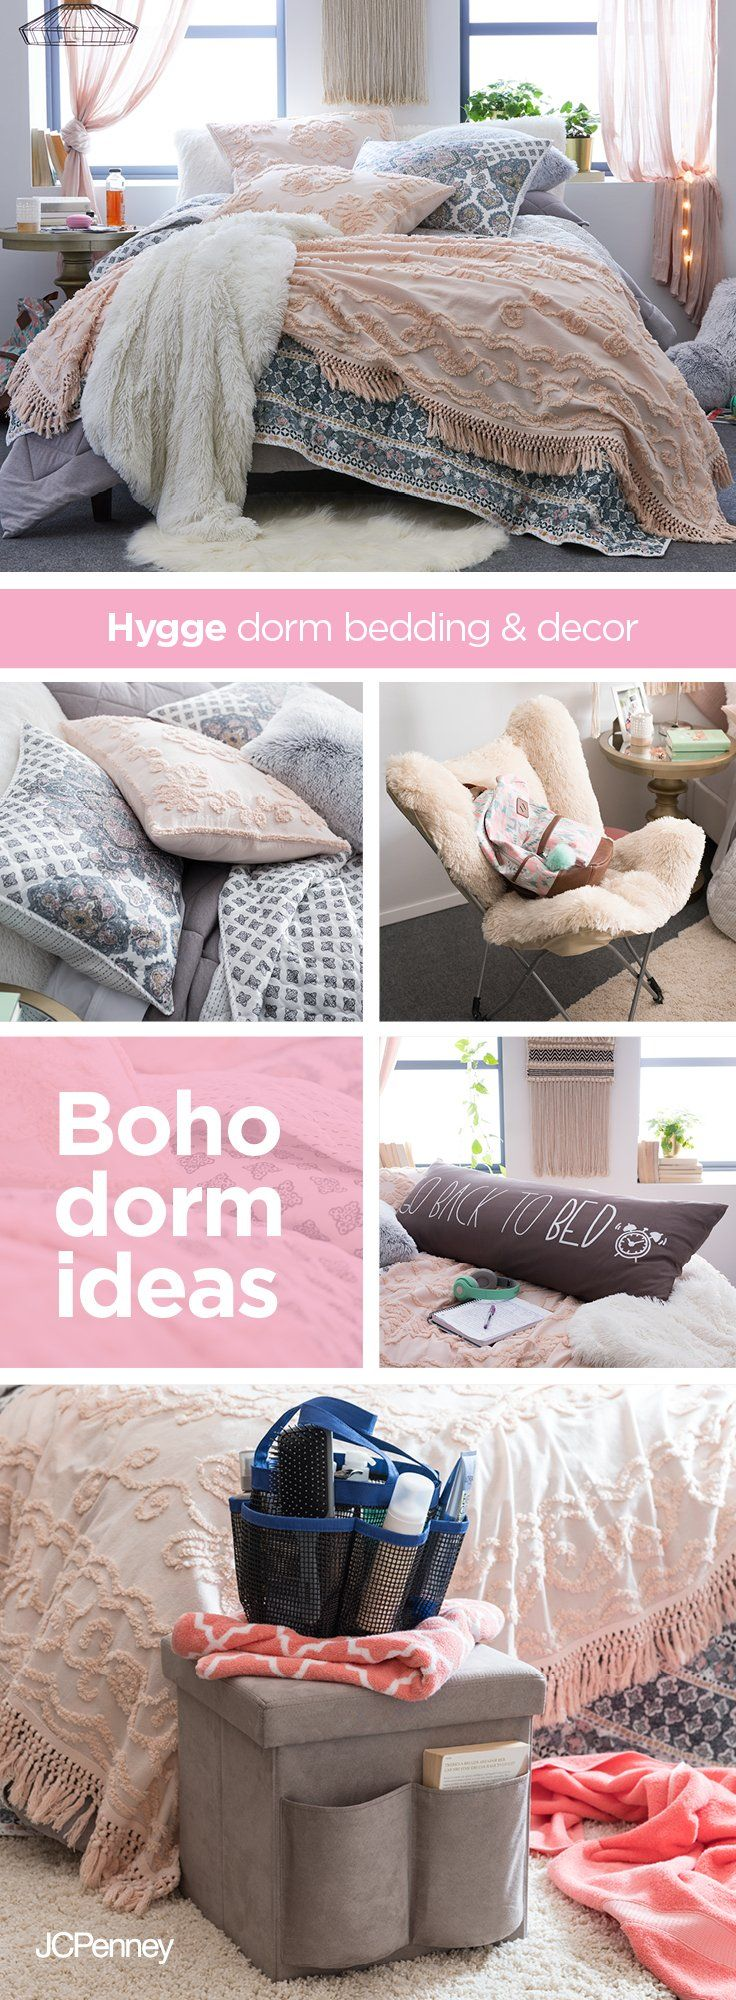 Your Flower Child Will Blossom In This Bohemian Dorm Decor Pair A Whipped-Cream Colored Shag -3771